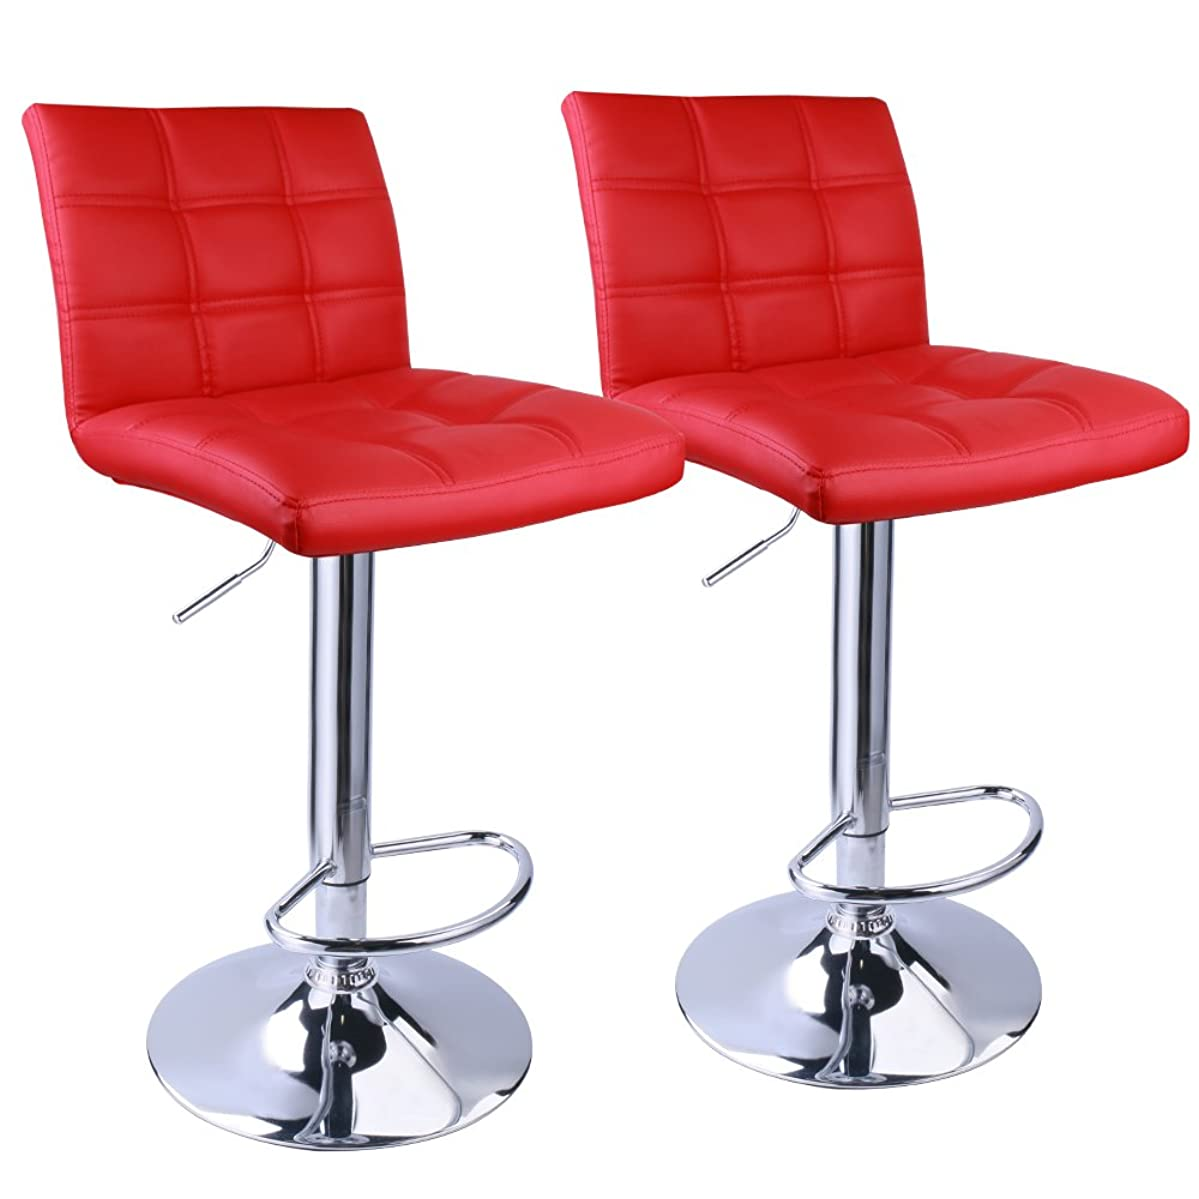 Leopard Adjustable Bar Stools Square Back, Leather Padded with Back, Set of 2 (Red)